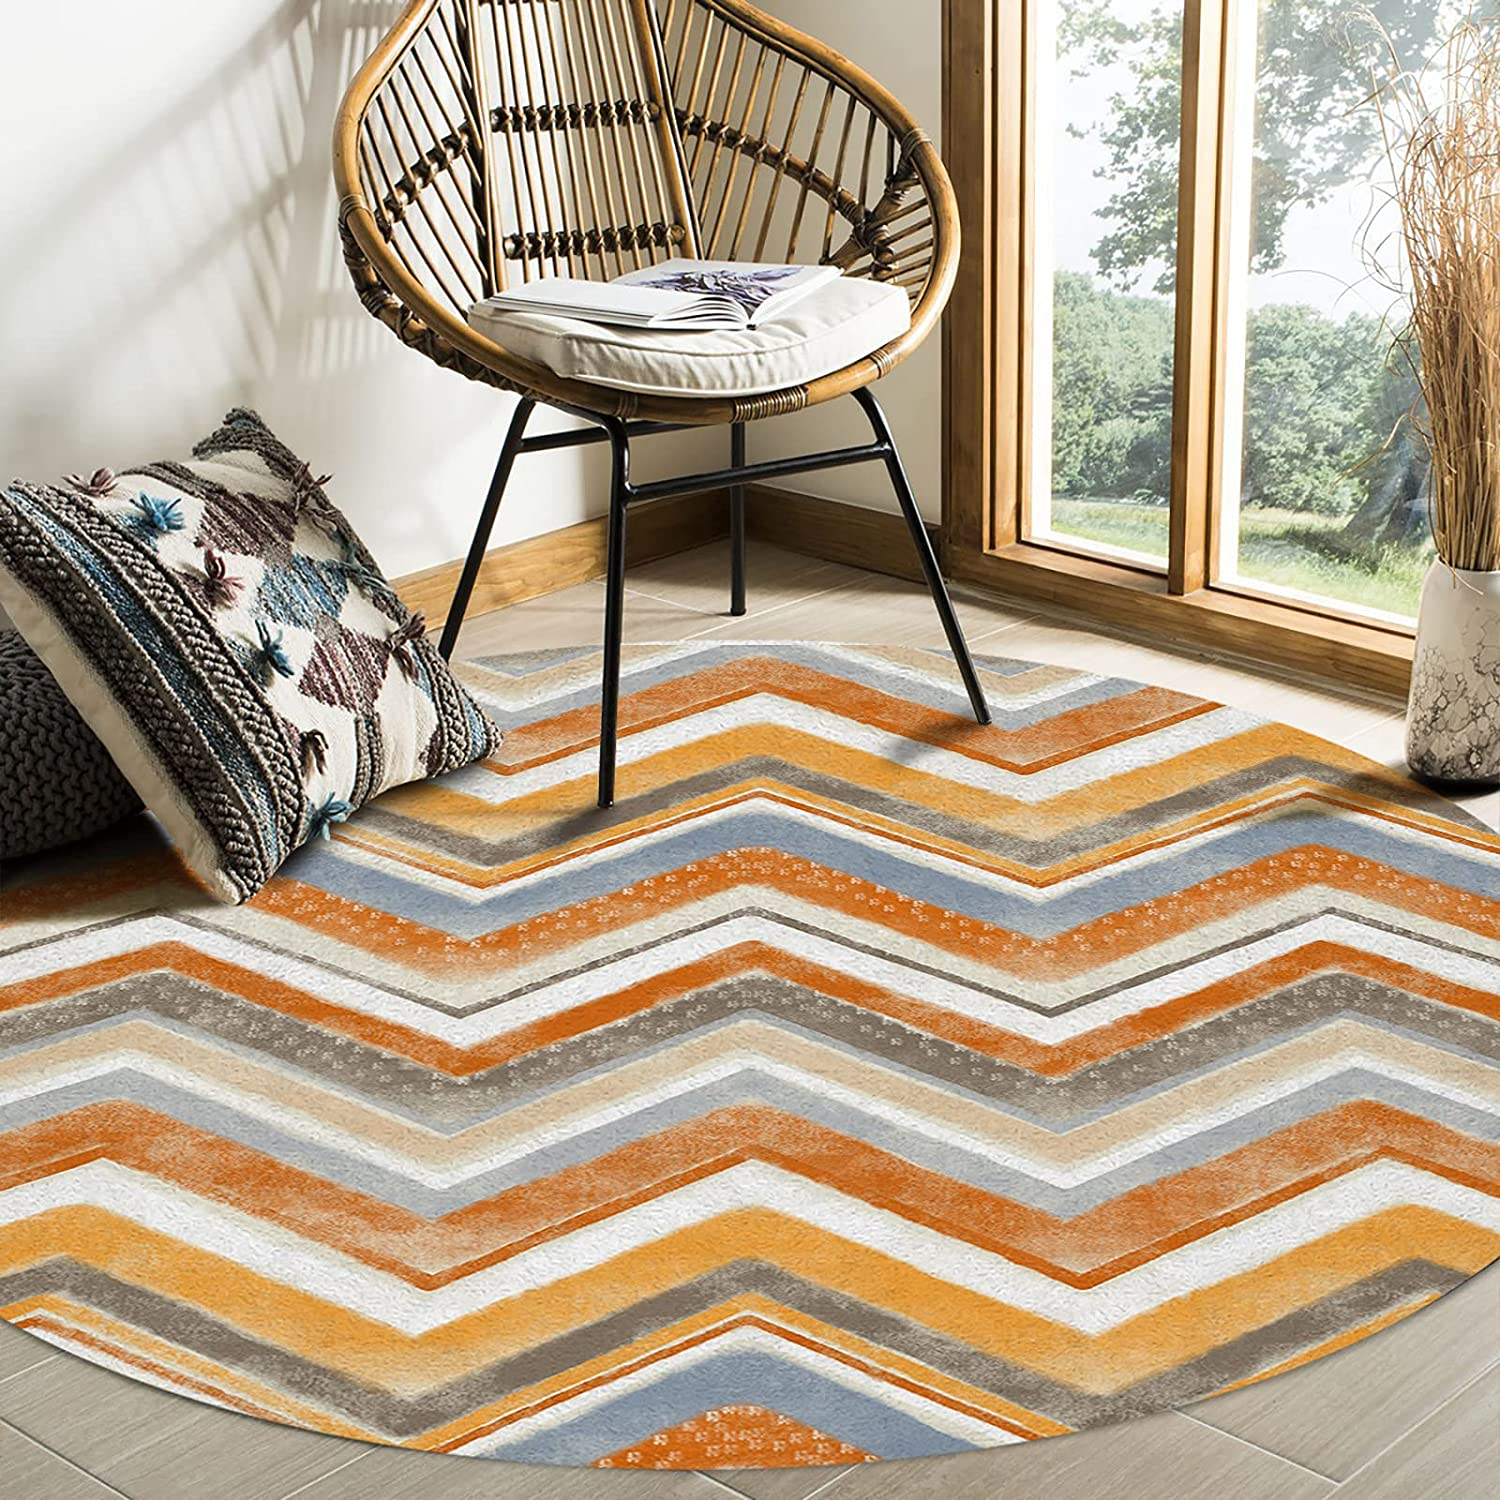 Olivefox Round Area Rugs Nordic Wholesale Style OFFicial shop Super Orange I Ripple Soft